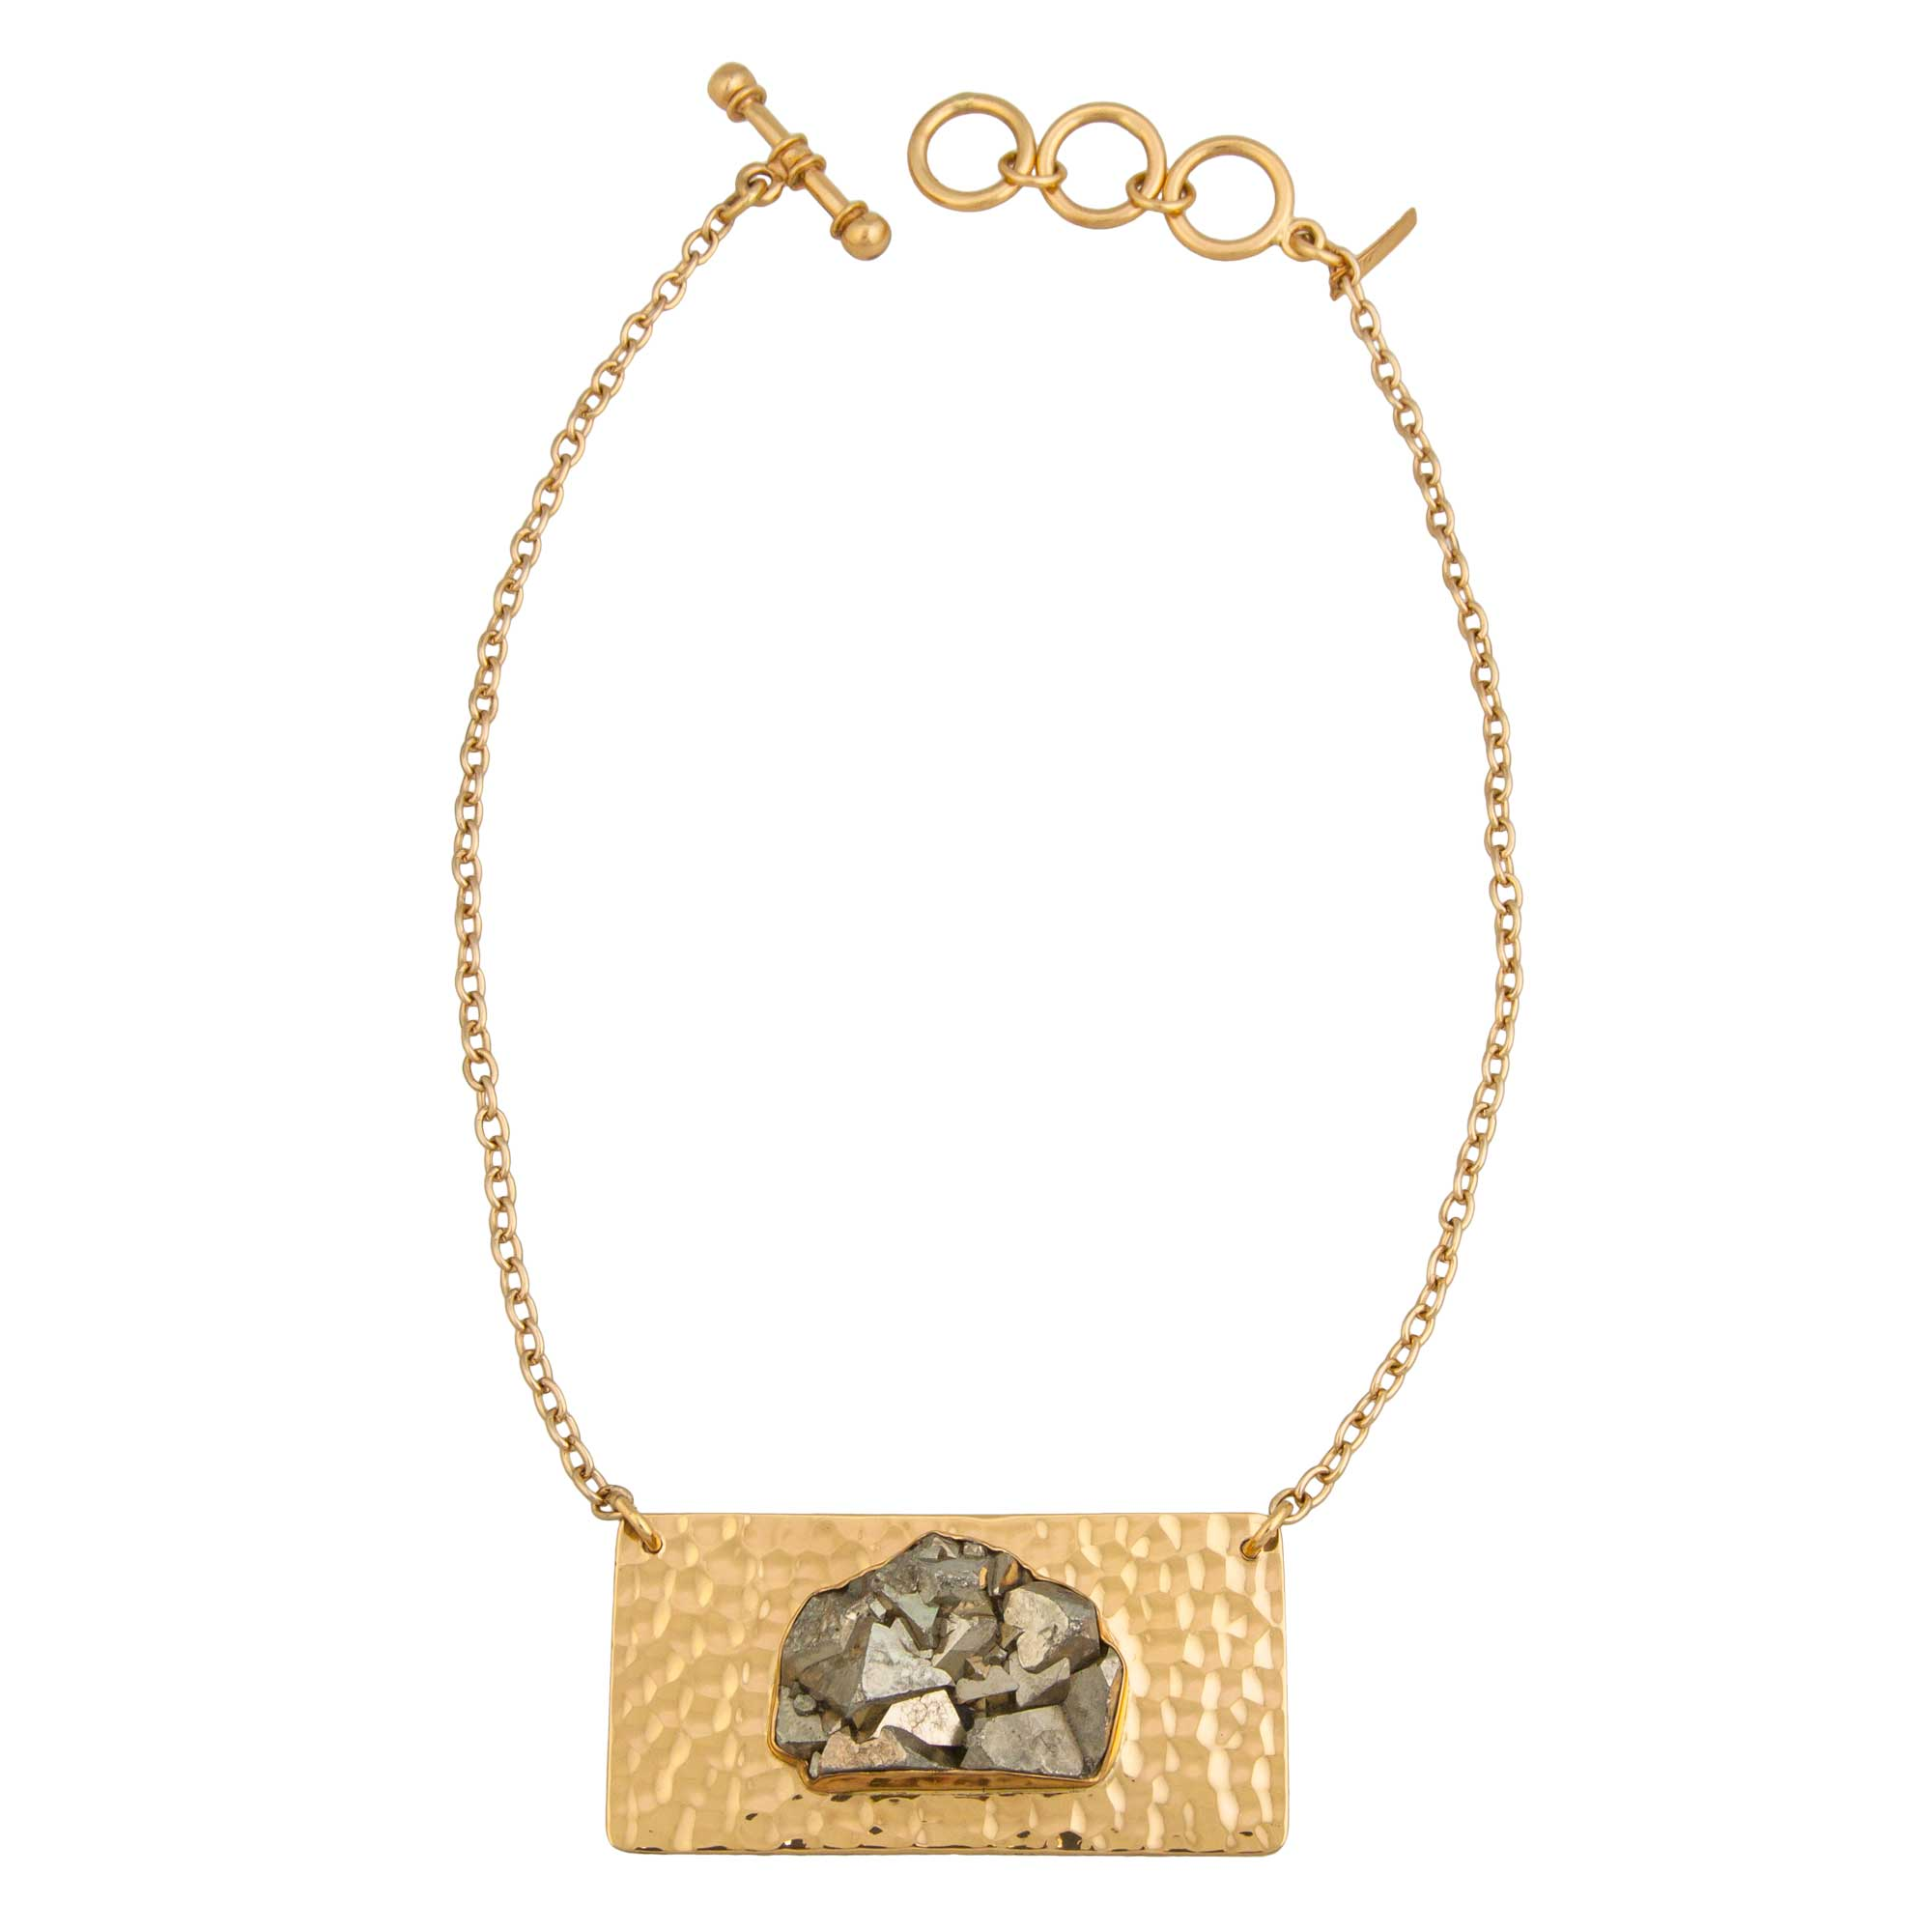 Alchemia Pyrite Necklace | Charles Albert Jewelry